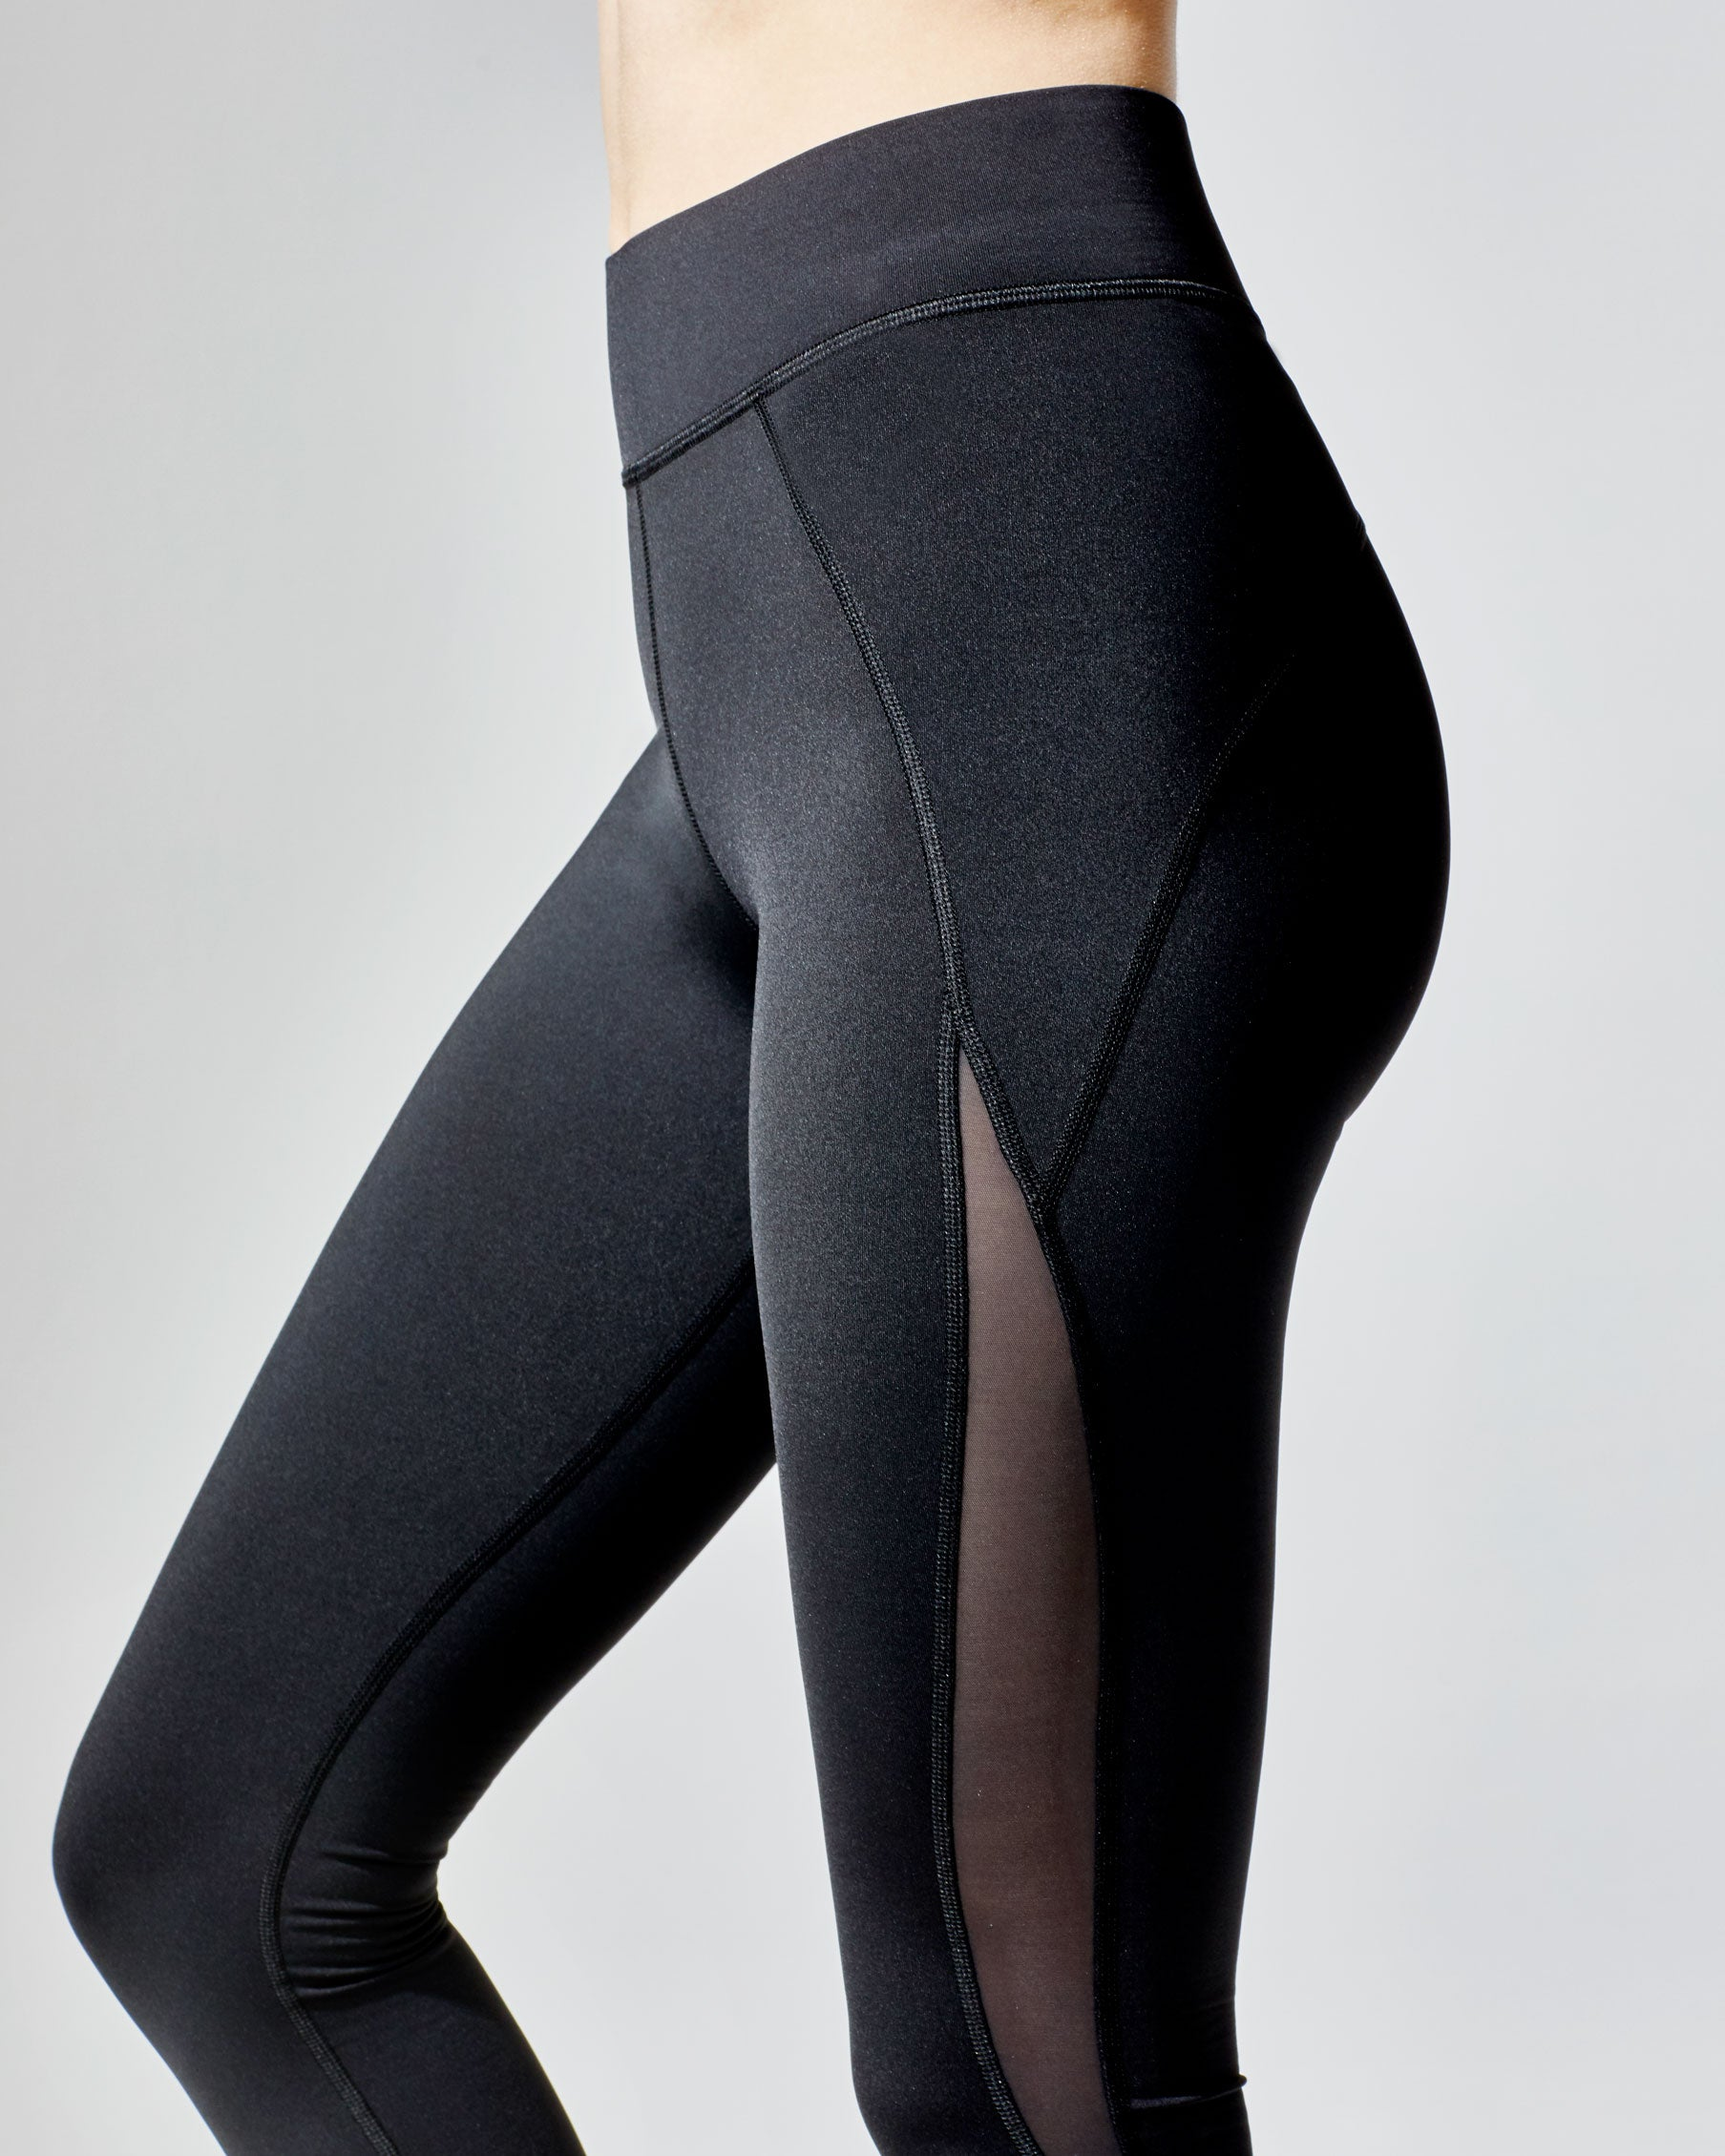 medusa-crop-legging-black